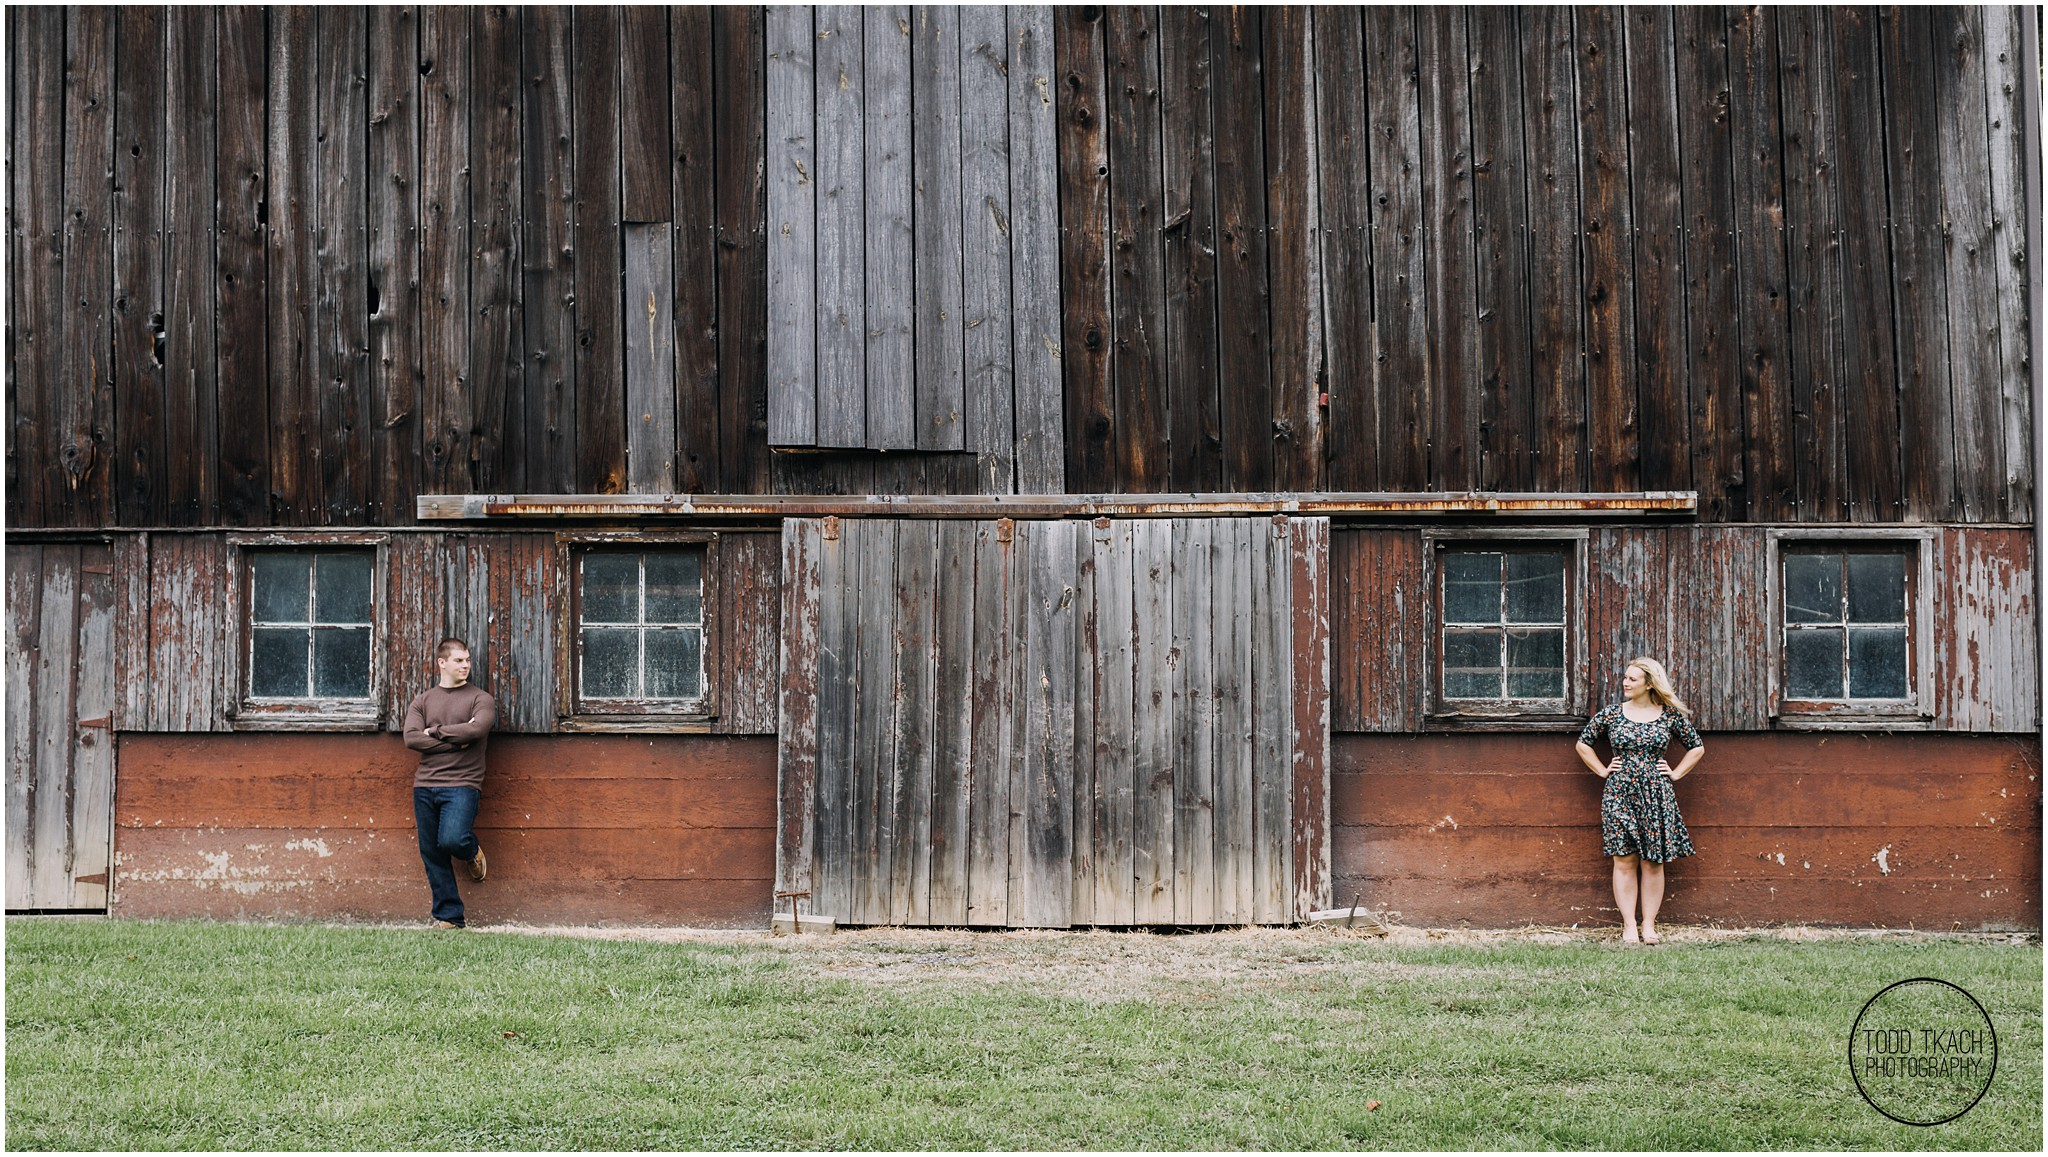 Christie & Scott - Rustic Barn Portrait